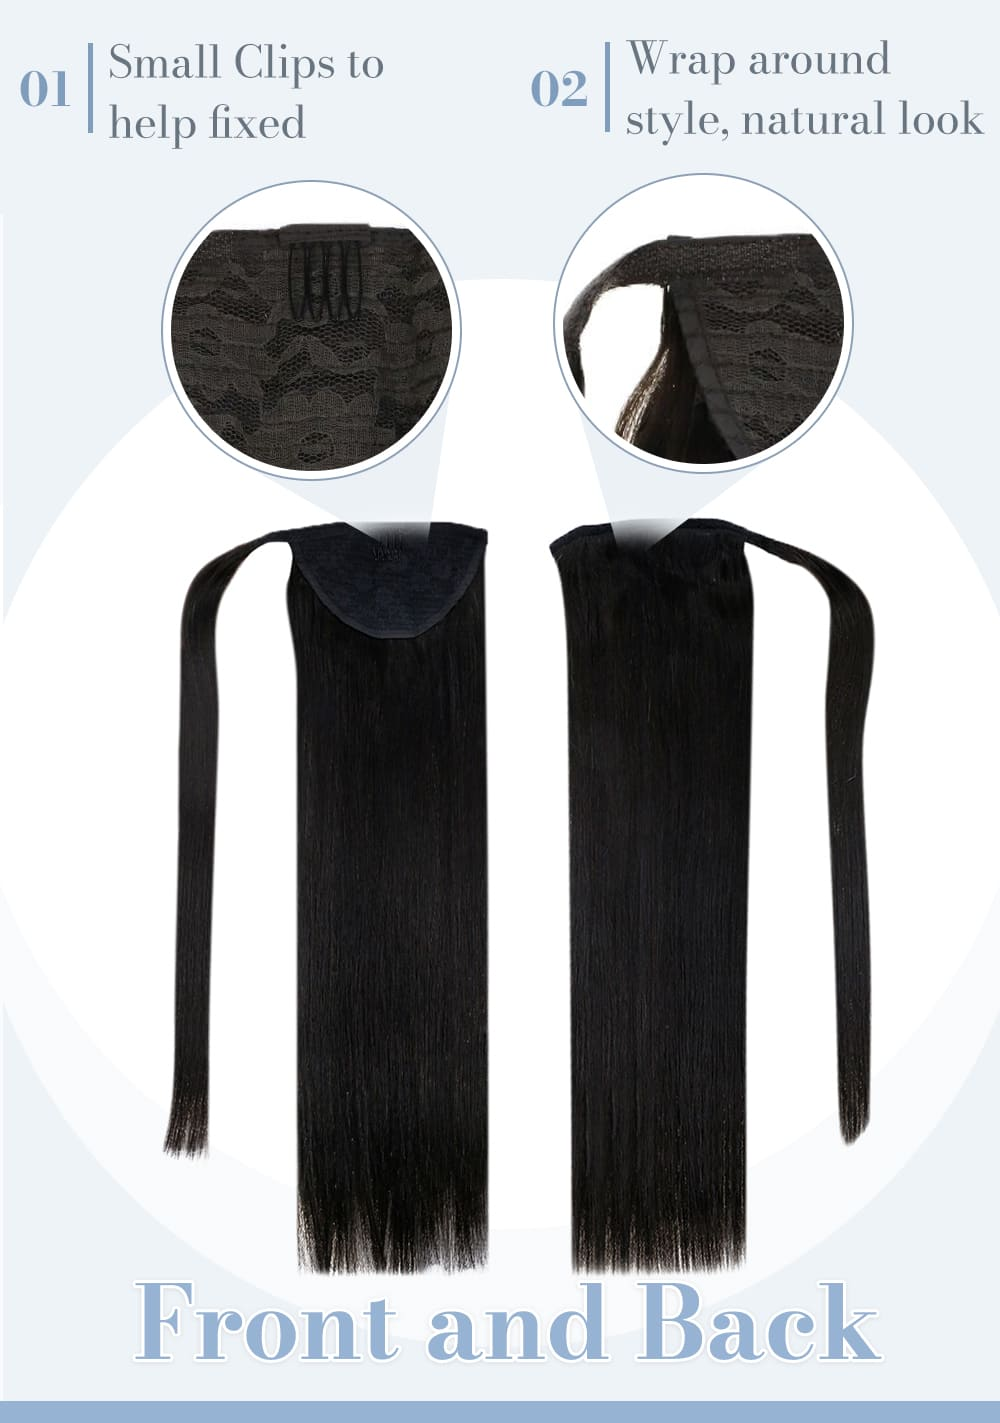 1b laavoo solid color pomytail natural black human hair extensions blend well with your hair can be dyded and curled